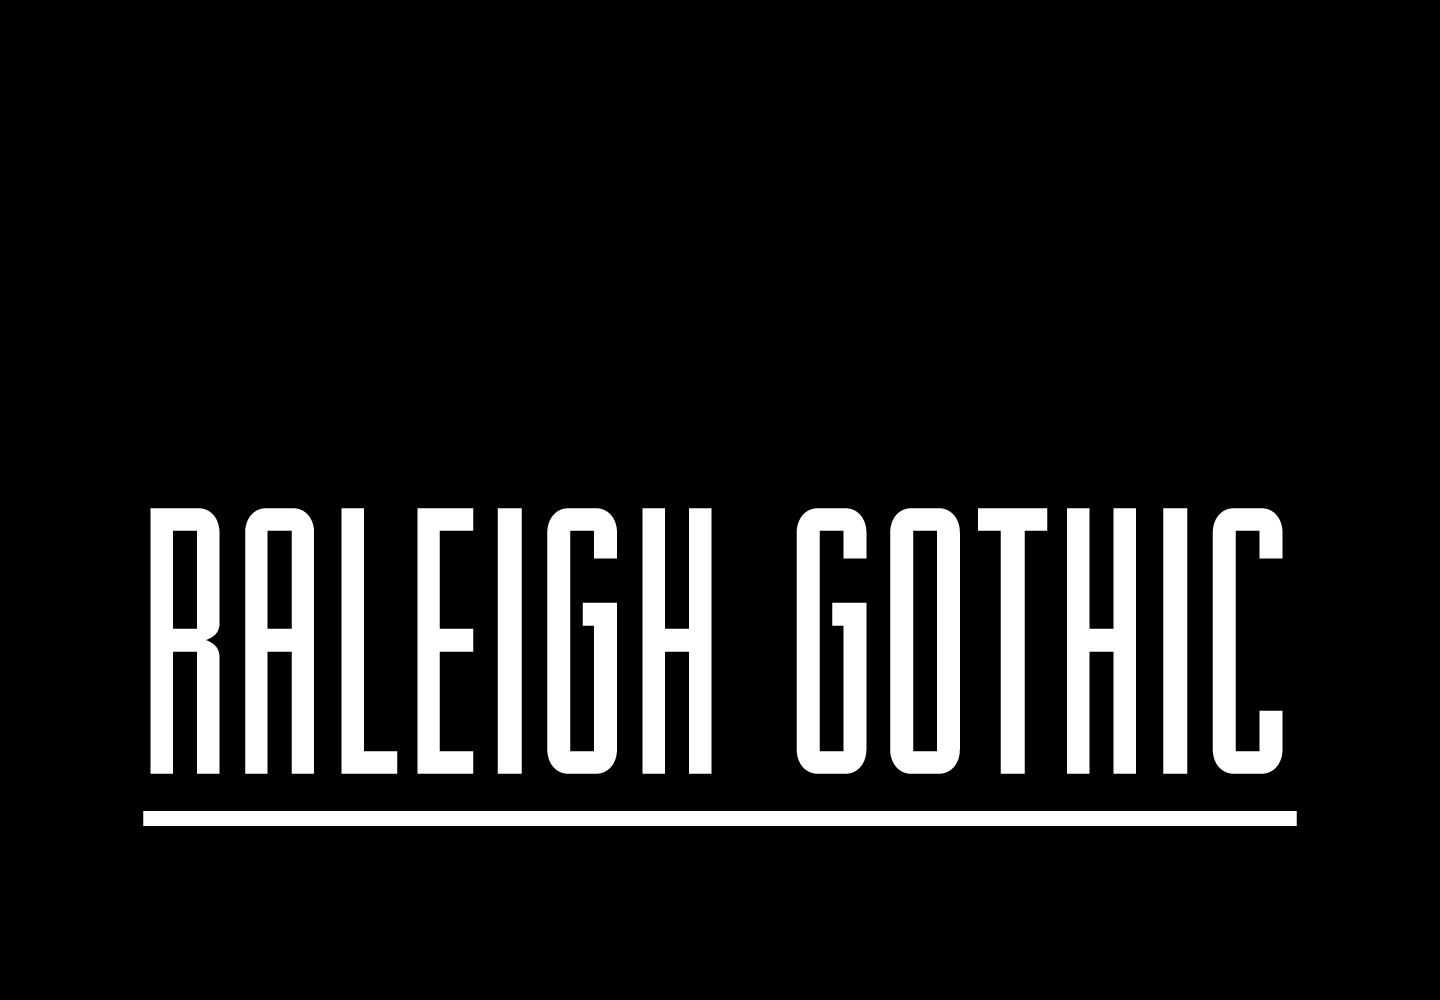 Raleigh Gothic Is Cool And Athletic With A Freshness Thats Perfectly At Home In Modern Sports Themed Designs This Font Great